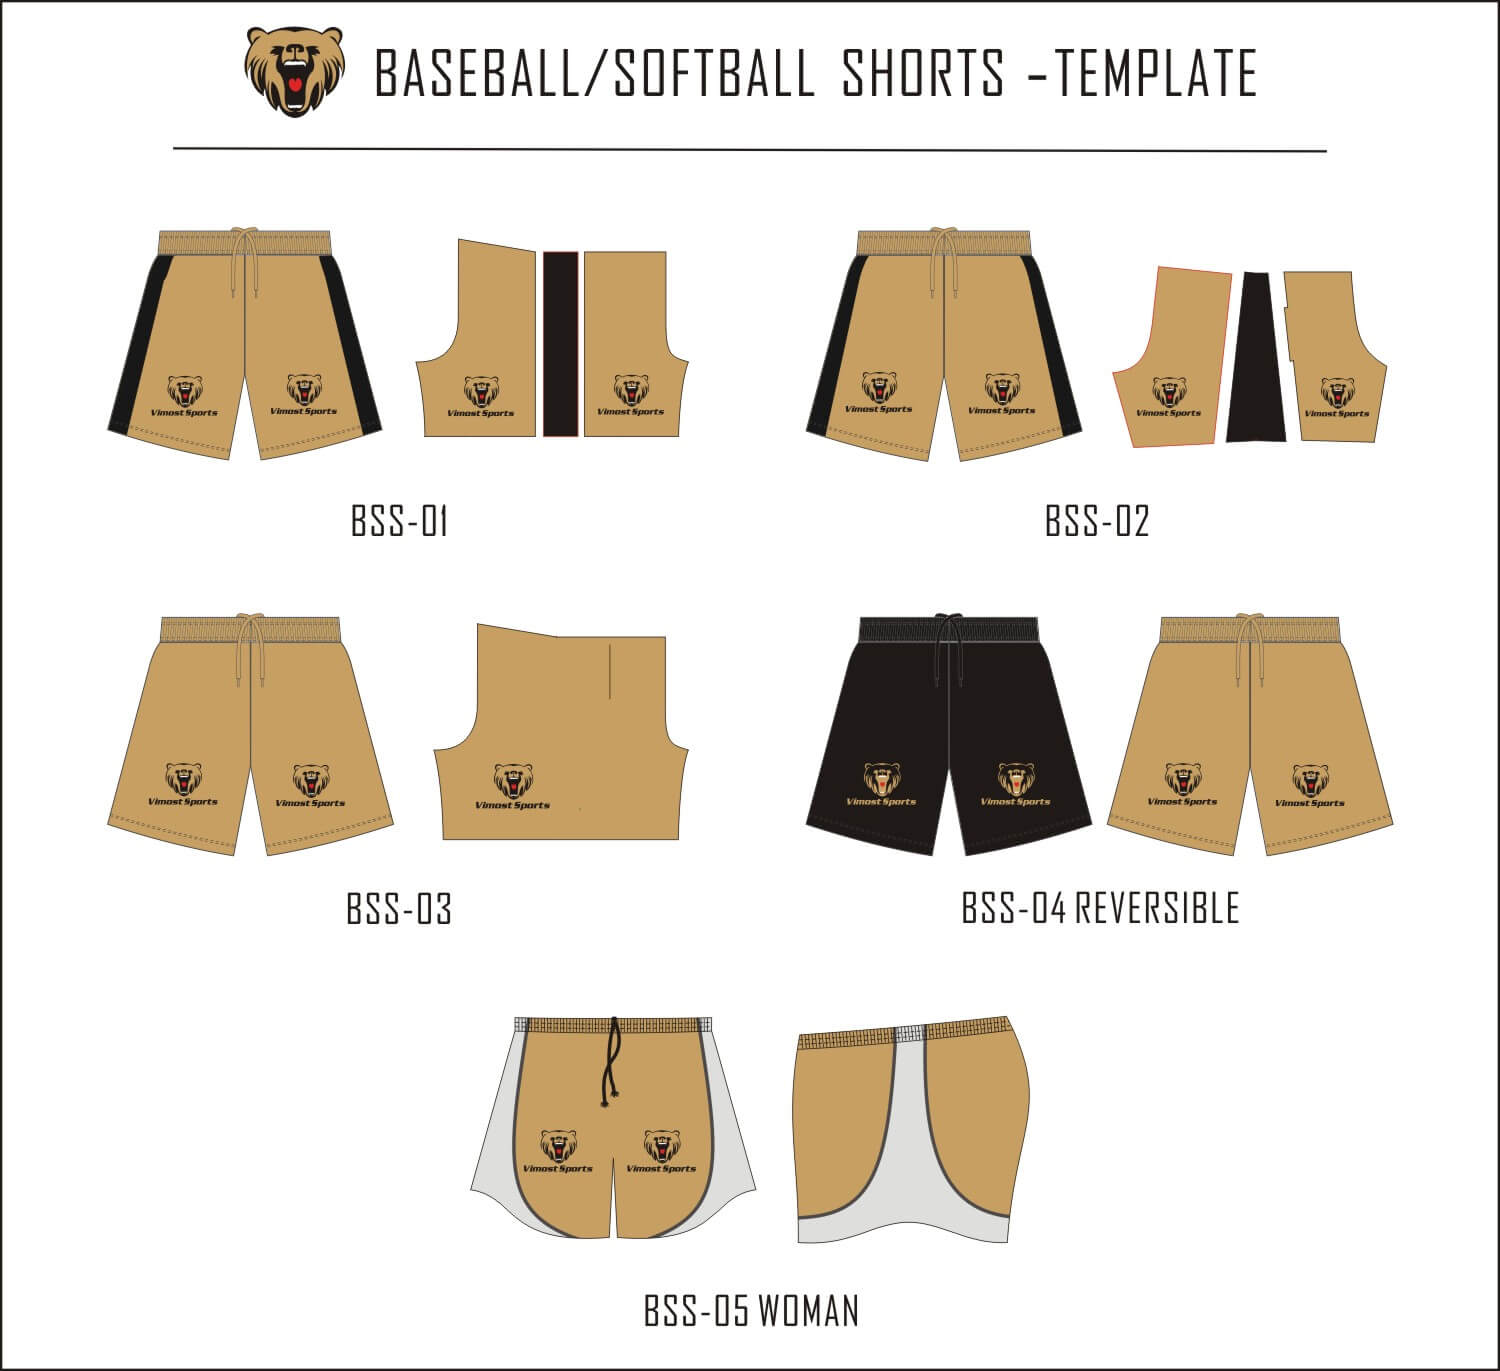 BASEBALL SOFTBALL SHORTS-TEMPLATE